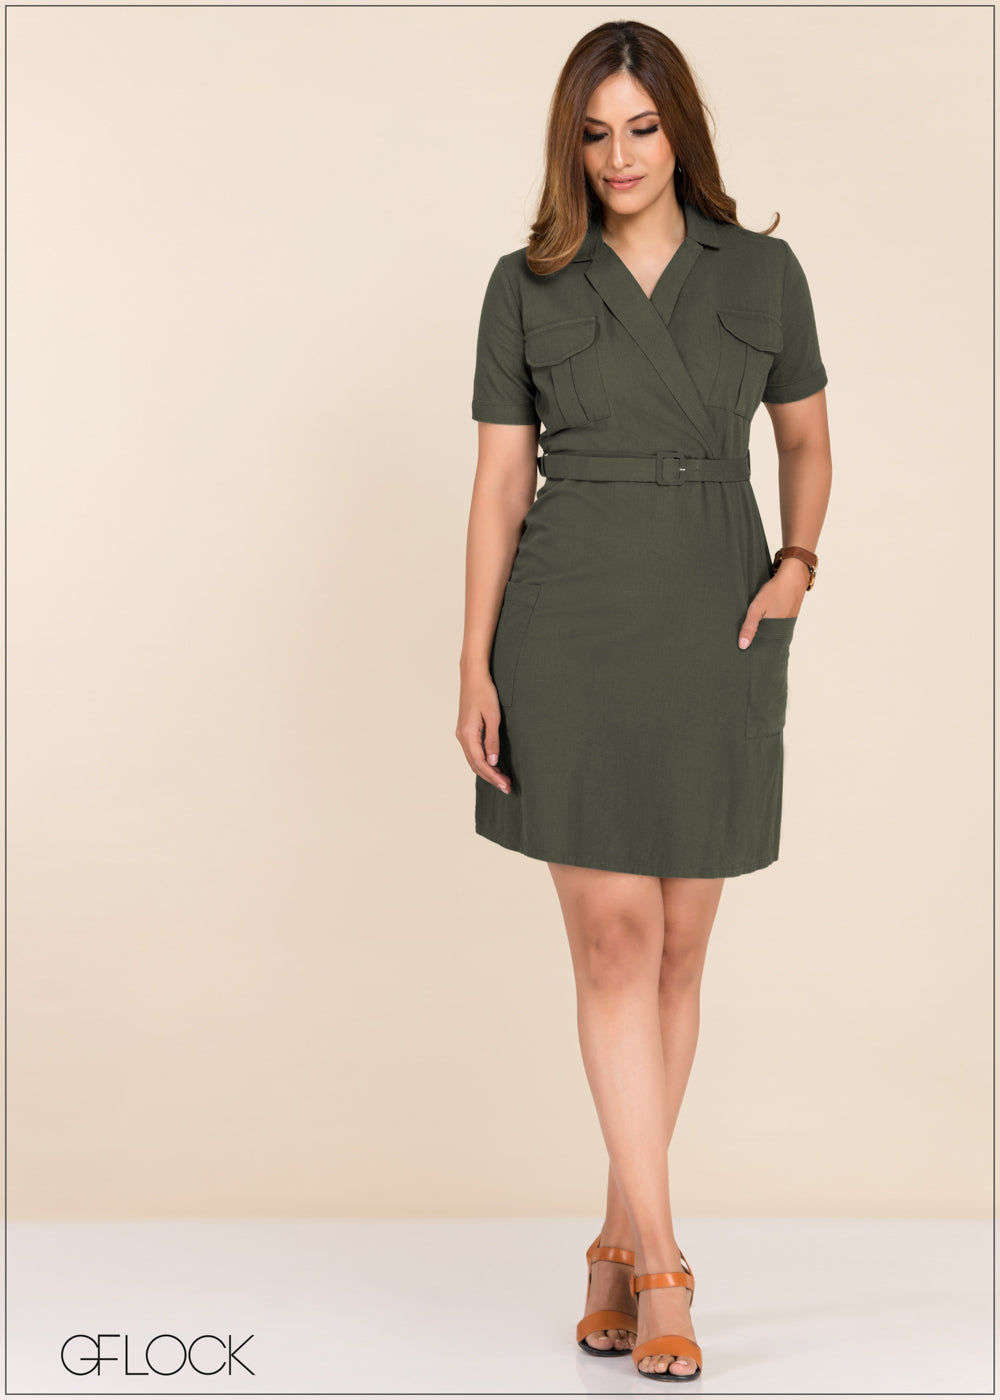 Front Wrap Dress - GFLOCK.LK